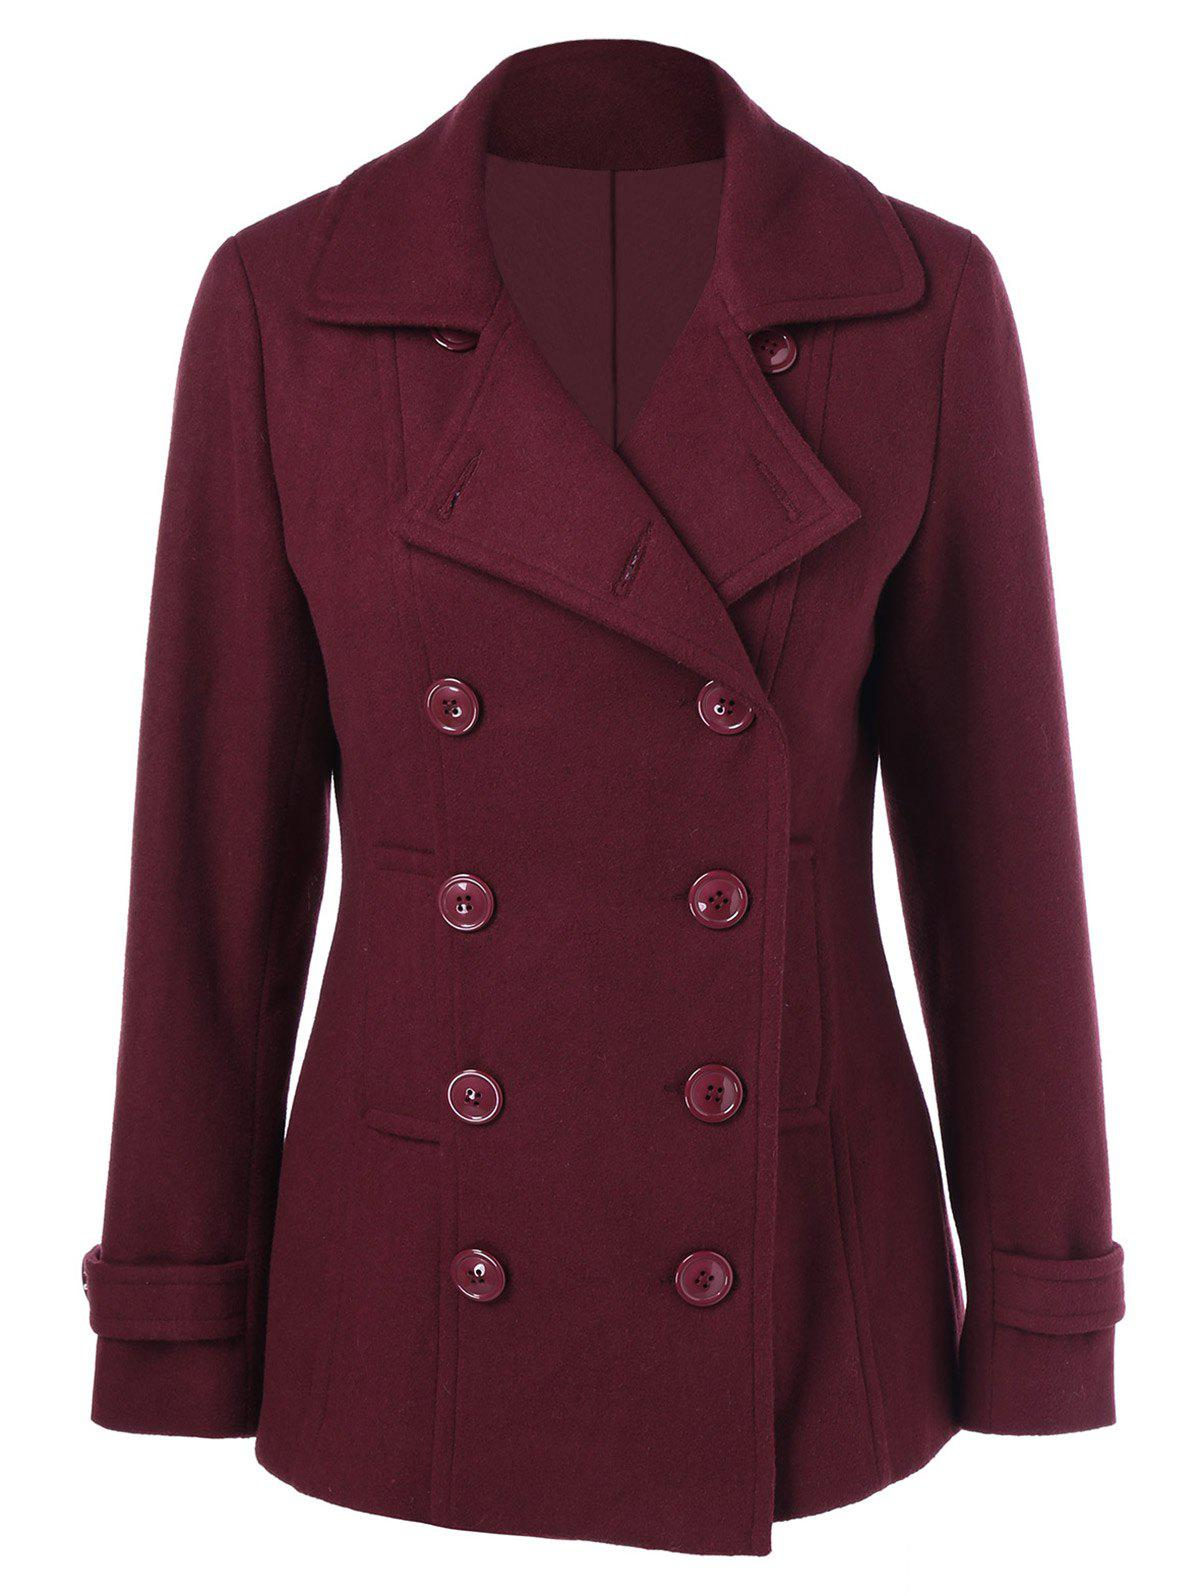 Chic Wool Blend Peacoat